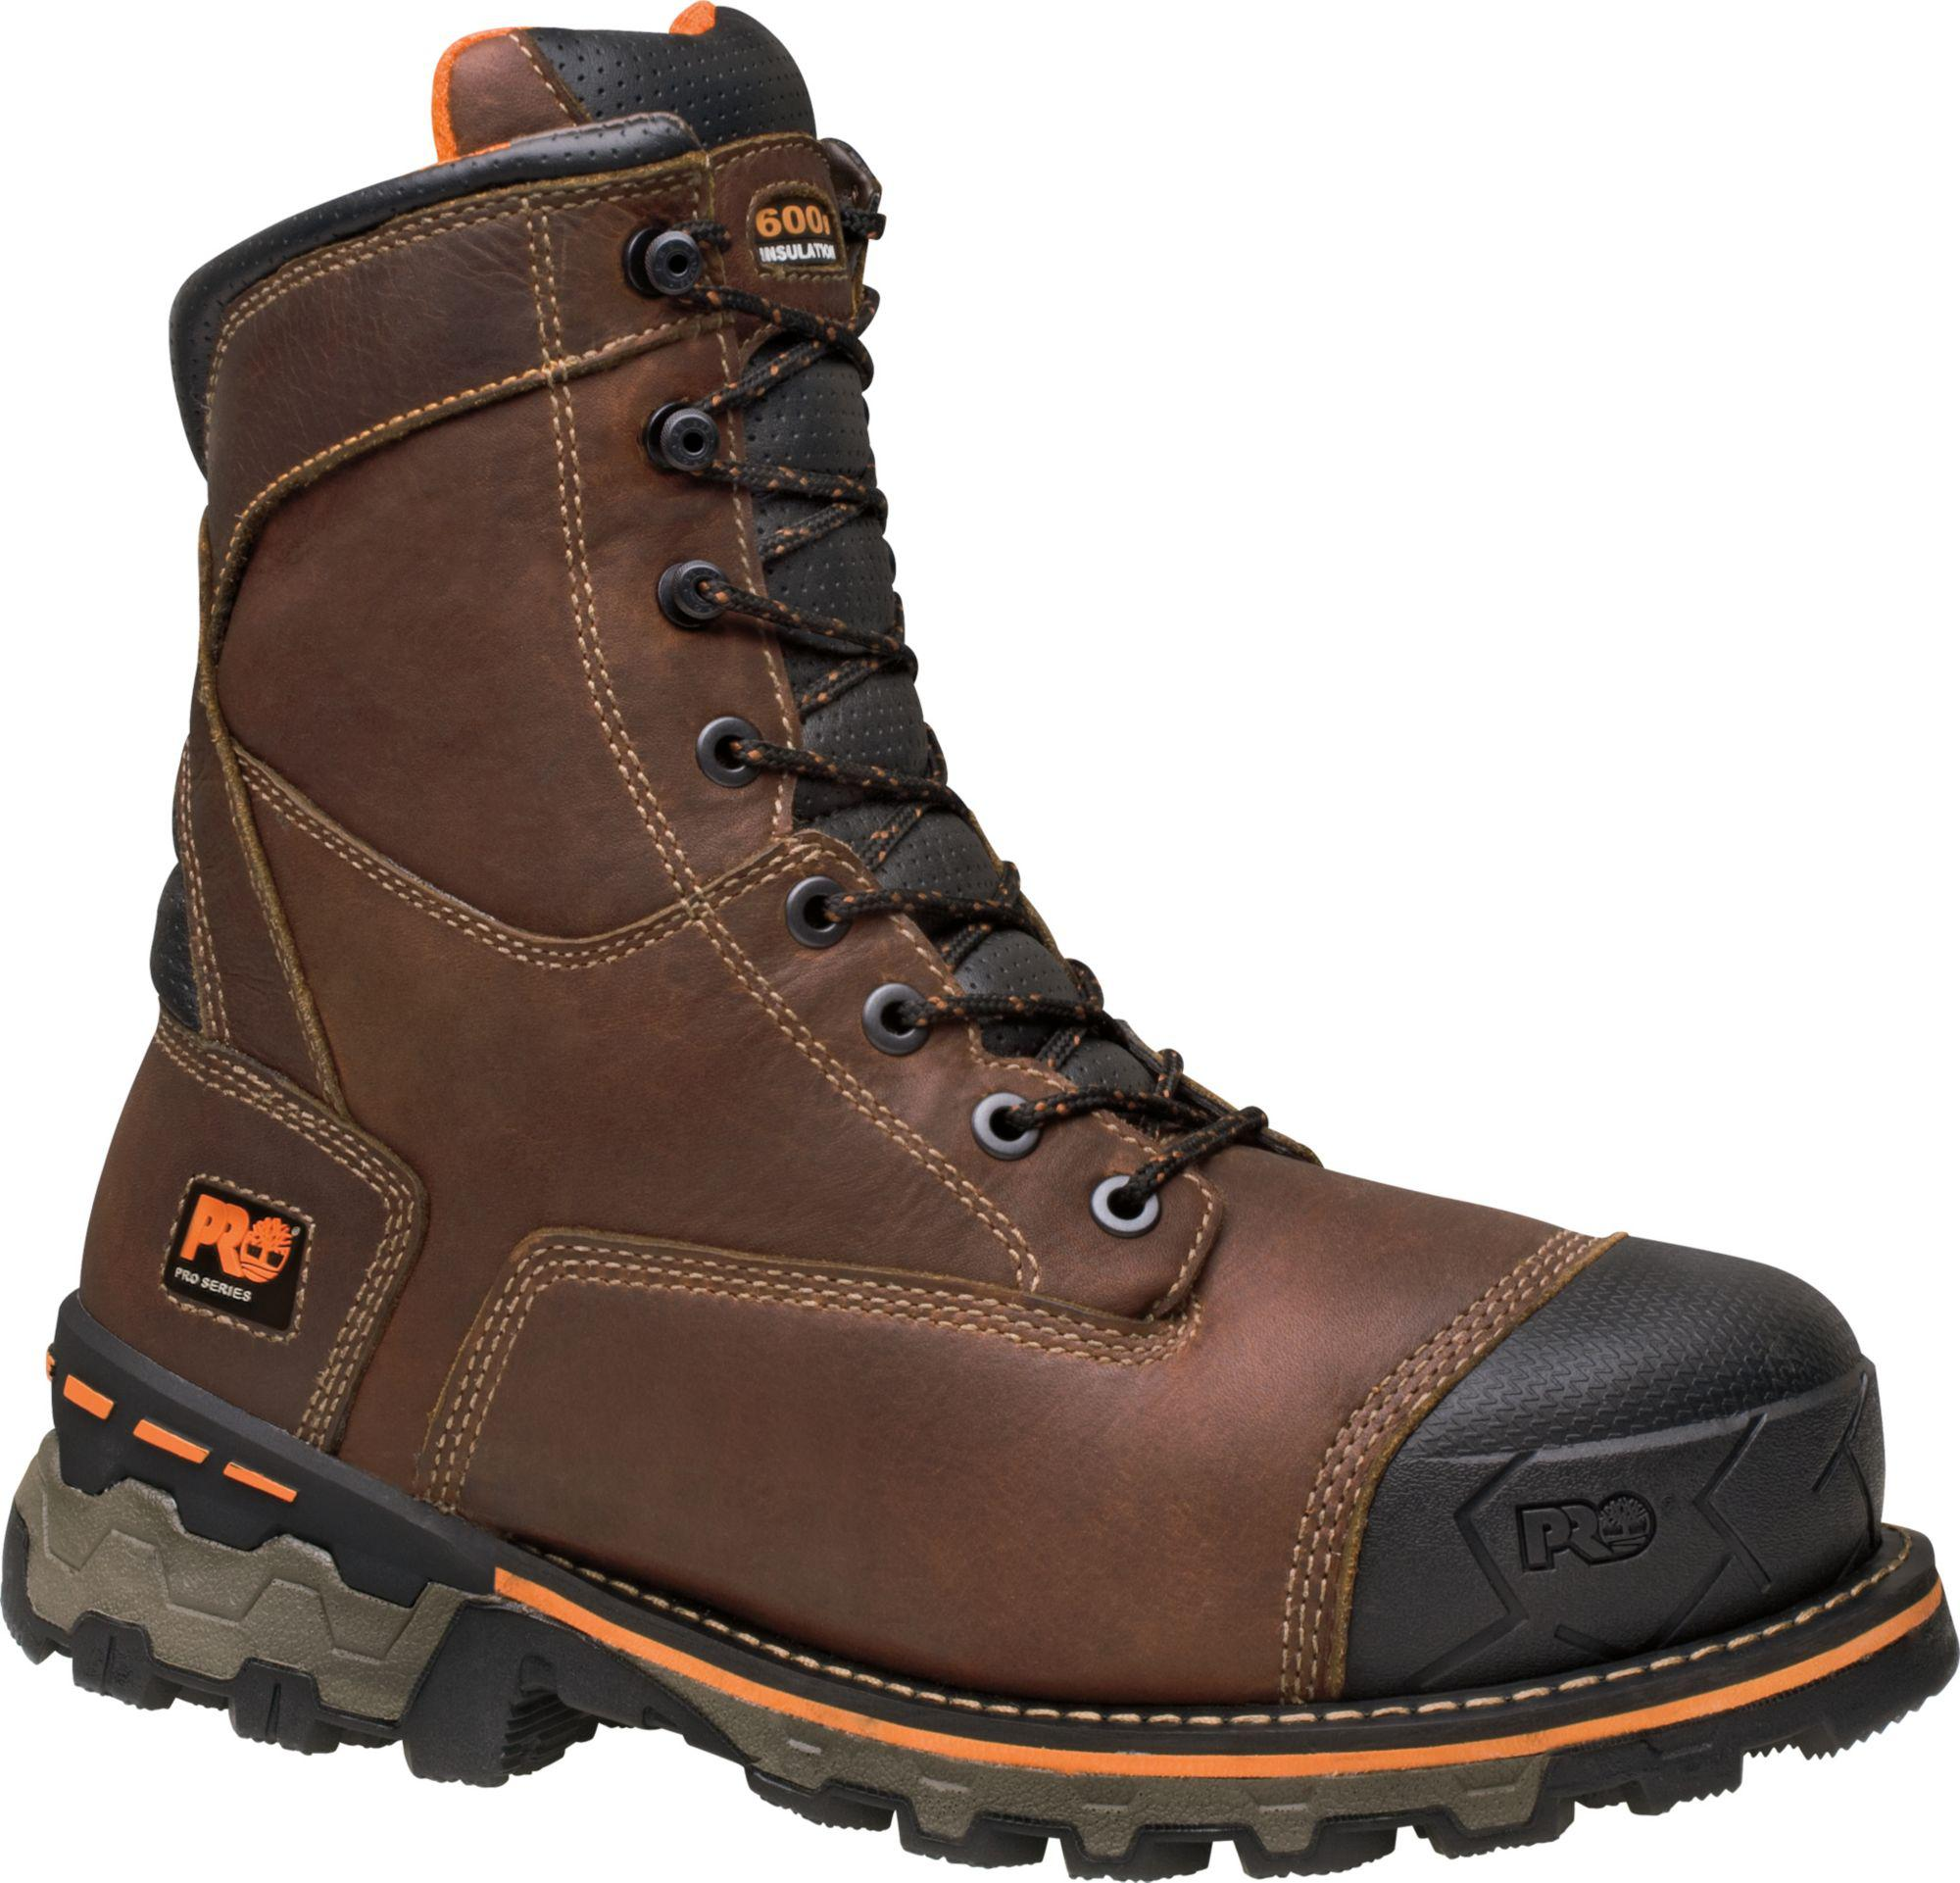 79ca5fc9907e5 Timberland - Brown Pro 8'' Boondock Waterproof 600g Soft Toe Work Boots for  Men